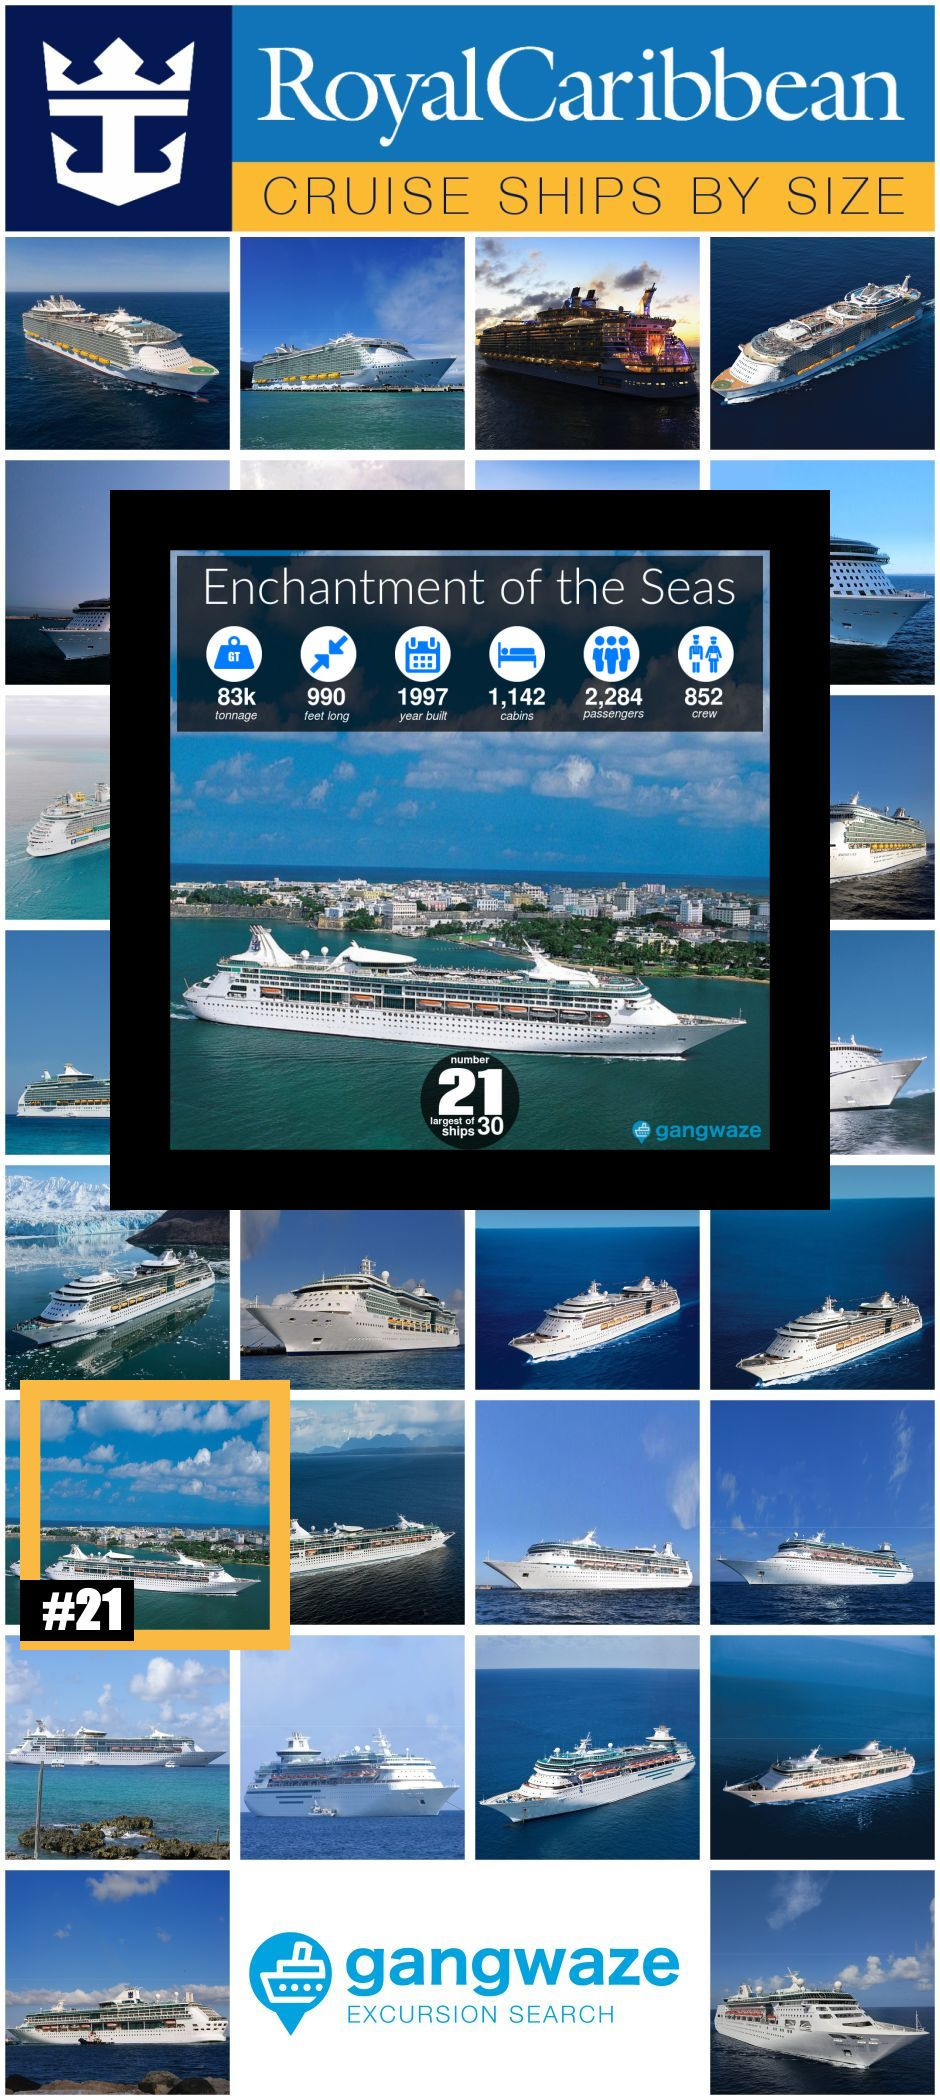 Royal Caribbean Ships By Size 2021 With Comparison Chart Royal Caribbean Ships Enchantment Of The Seas Royal Caribbean